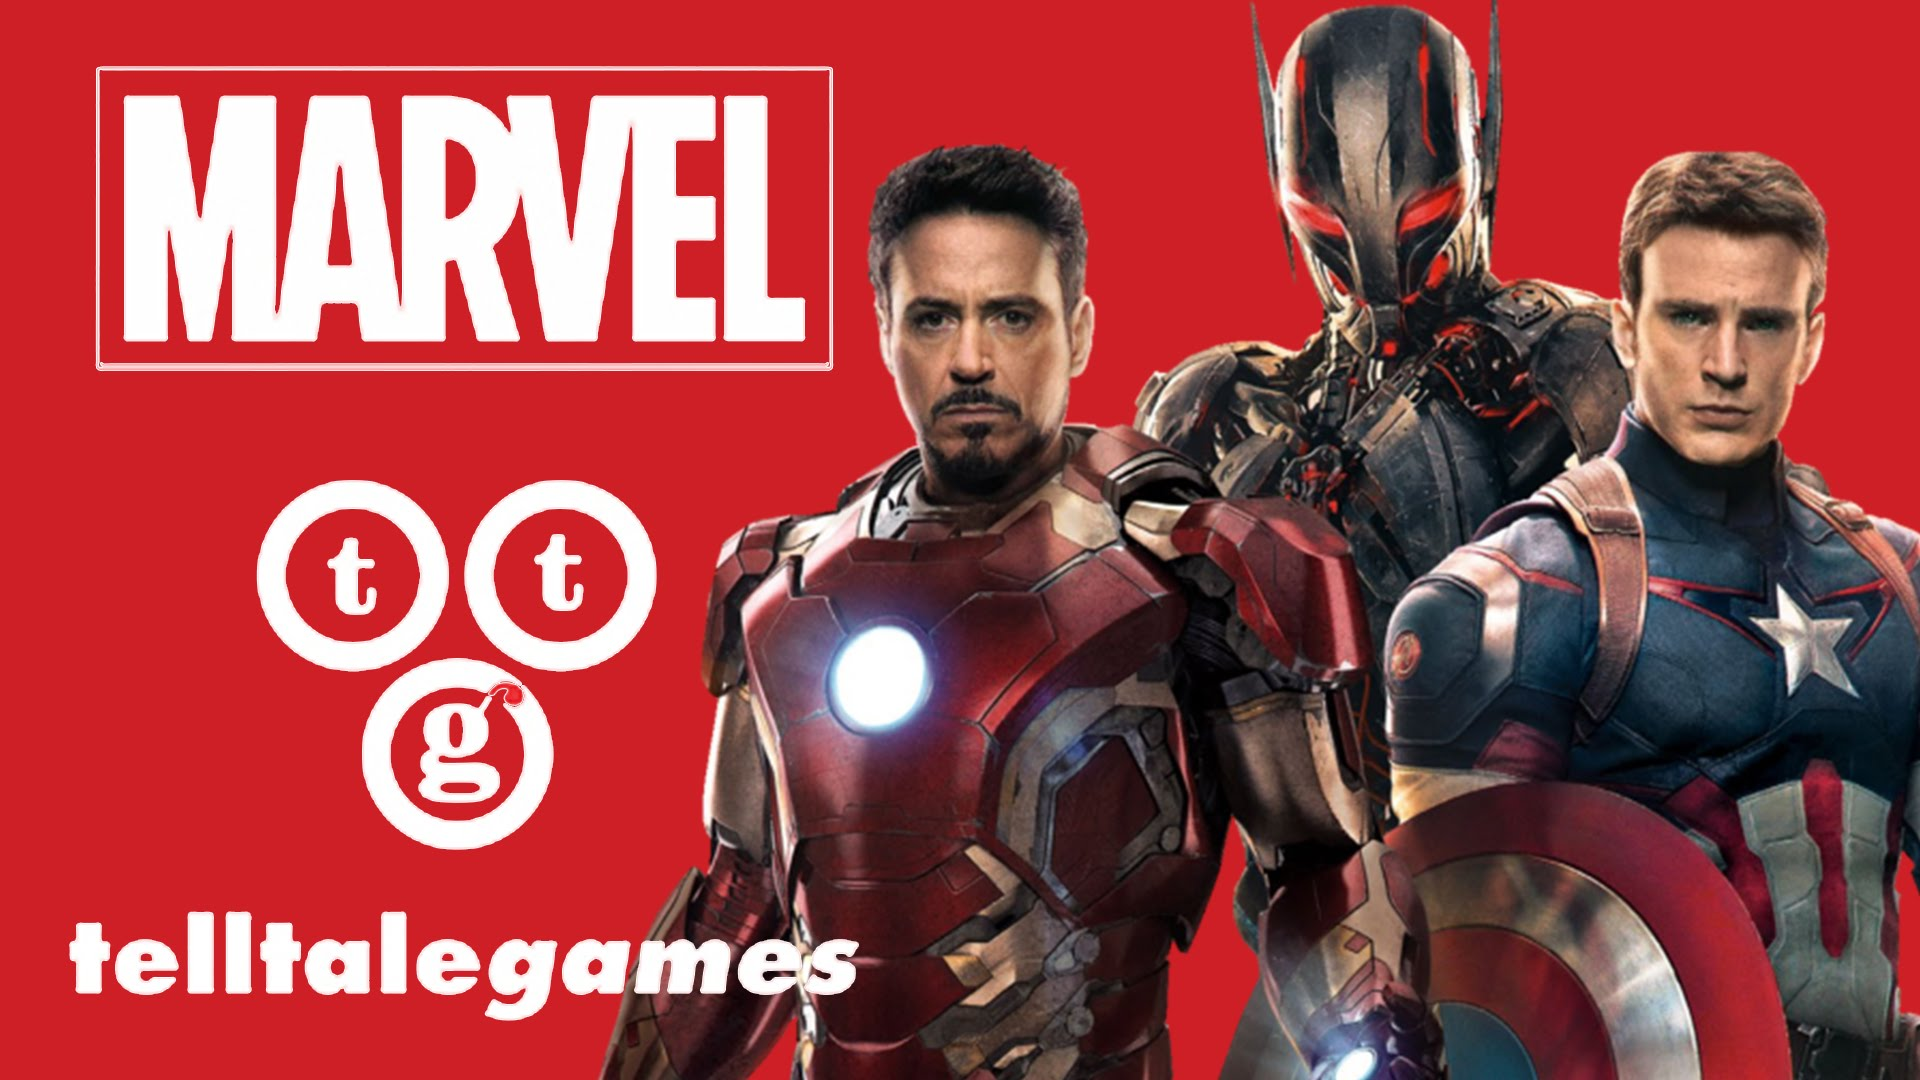 Telltale Games and Marvel